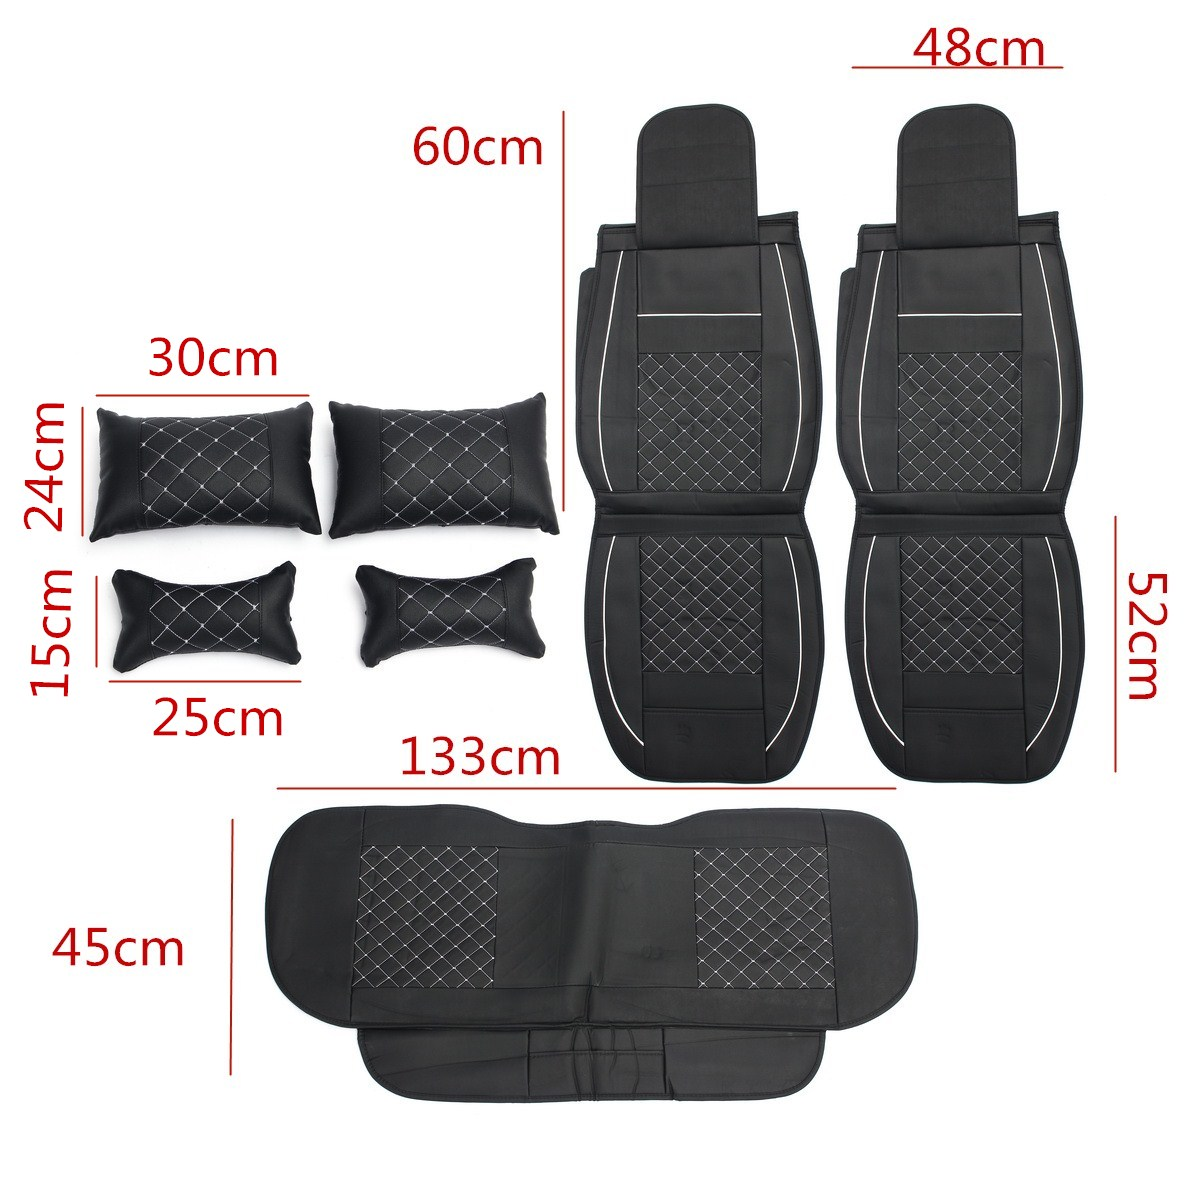 7PCS PU Leather Car Seat Cover Protector with Pillow Waist Cushion Set for 5 Seat Cars Universal